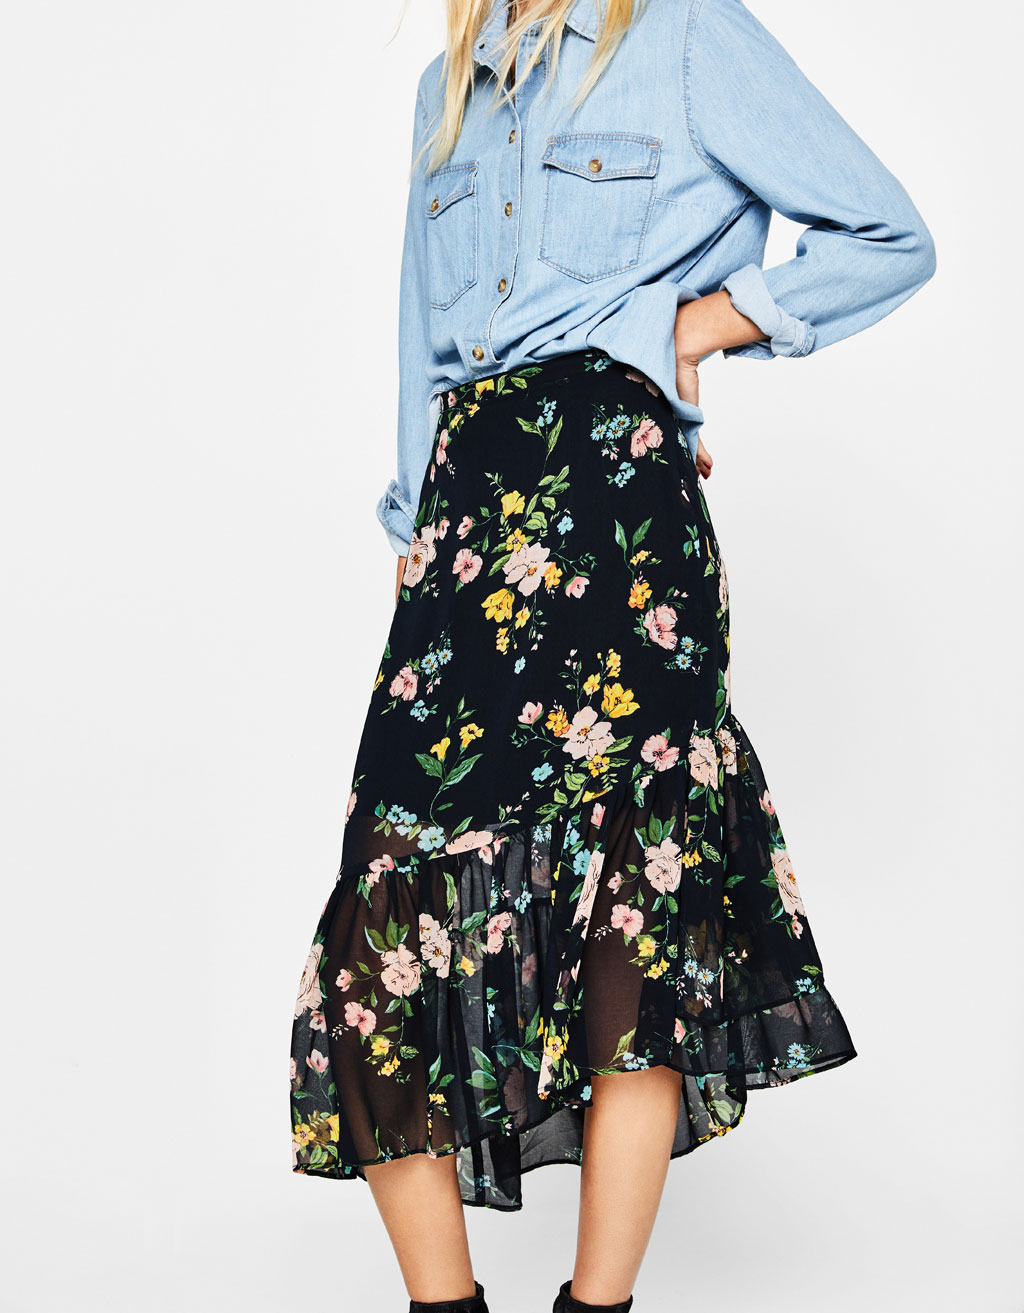 Asymmetric ruffled skirt